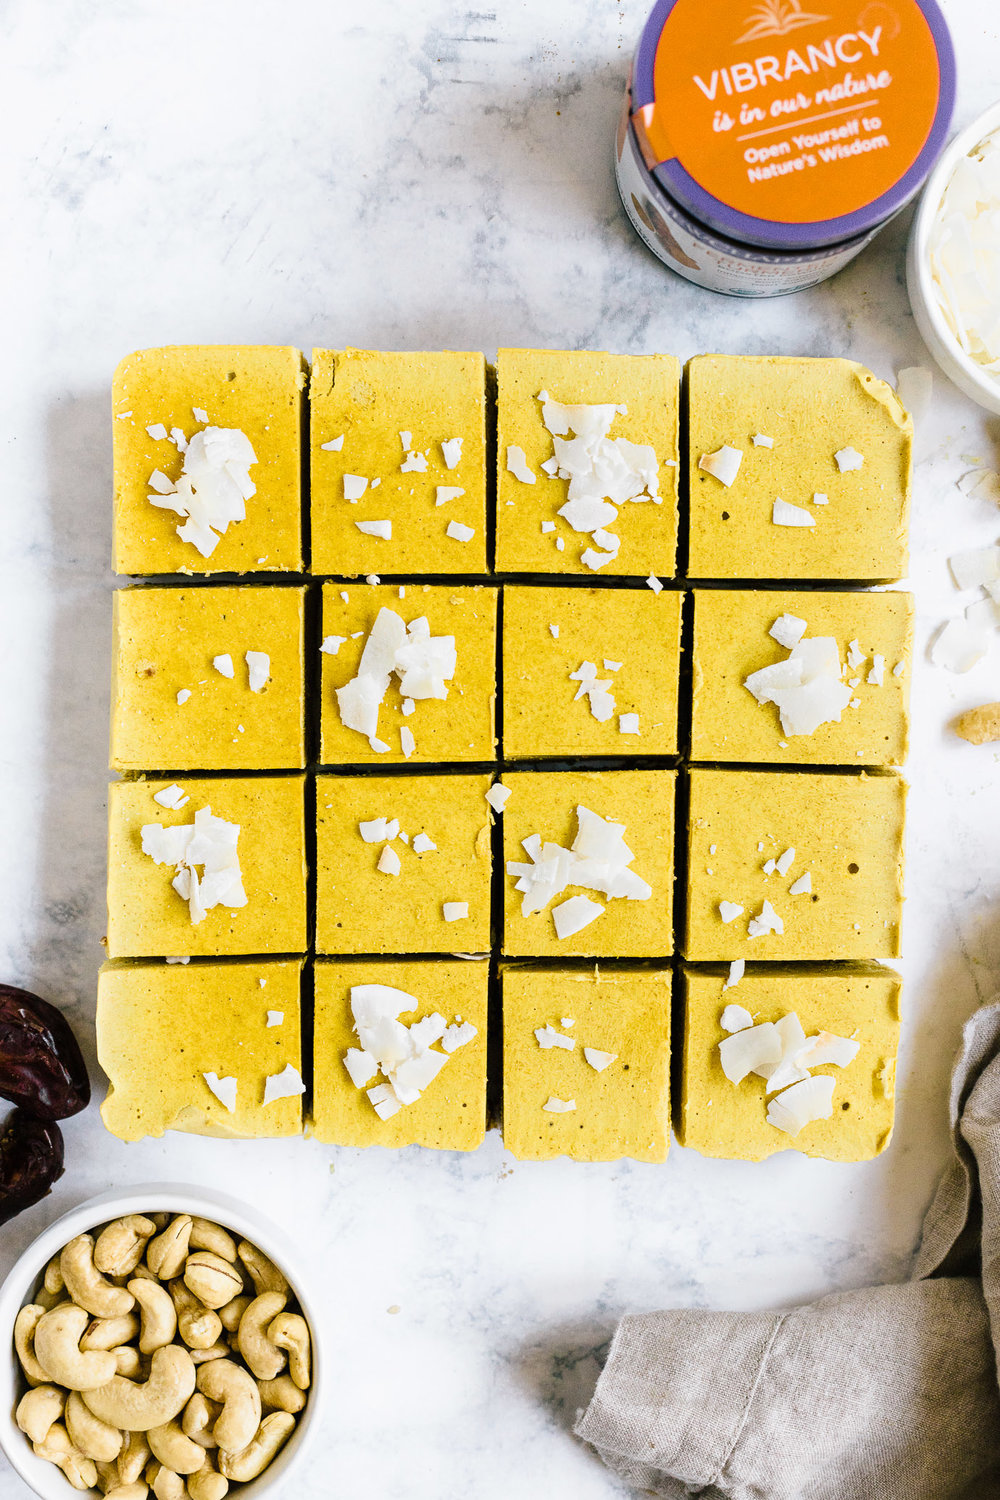 No-Bake Golden Milk Cheesecake Bars made with New Chapter fermented turmeric booster powder. #sponsored #NewChapterVitamins